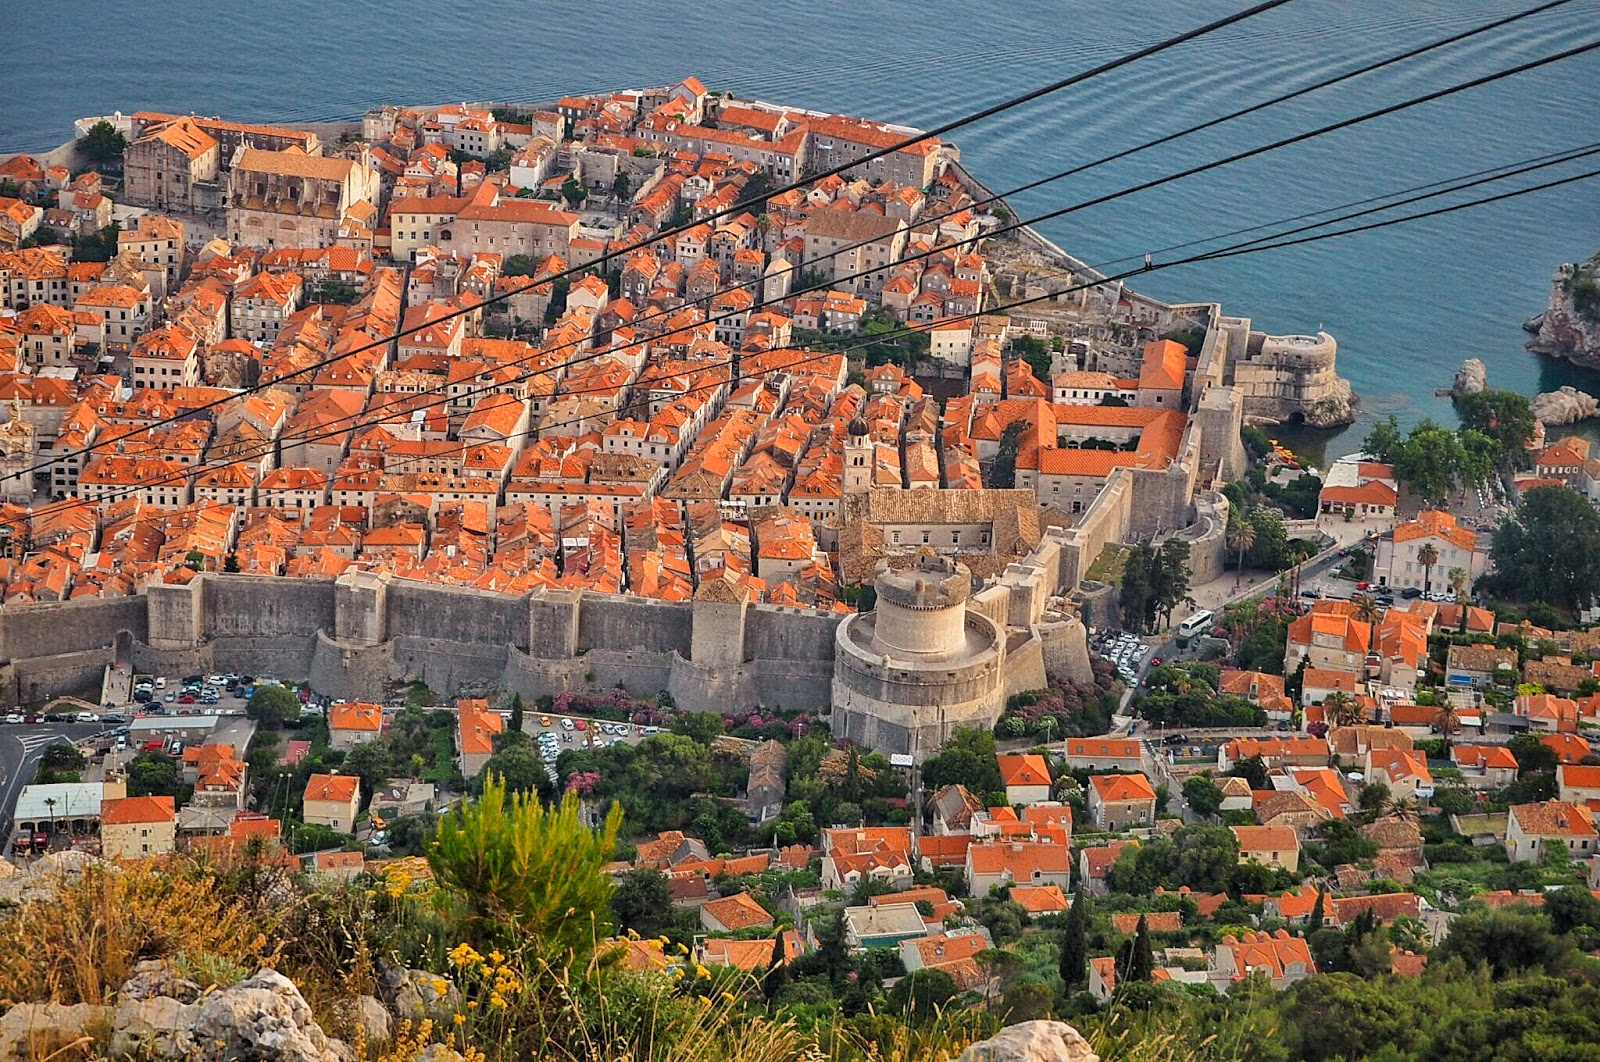 breathtaking views of the old city Dubrovnik from the cable car